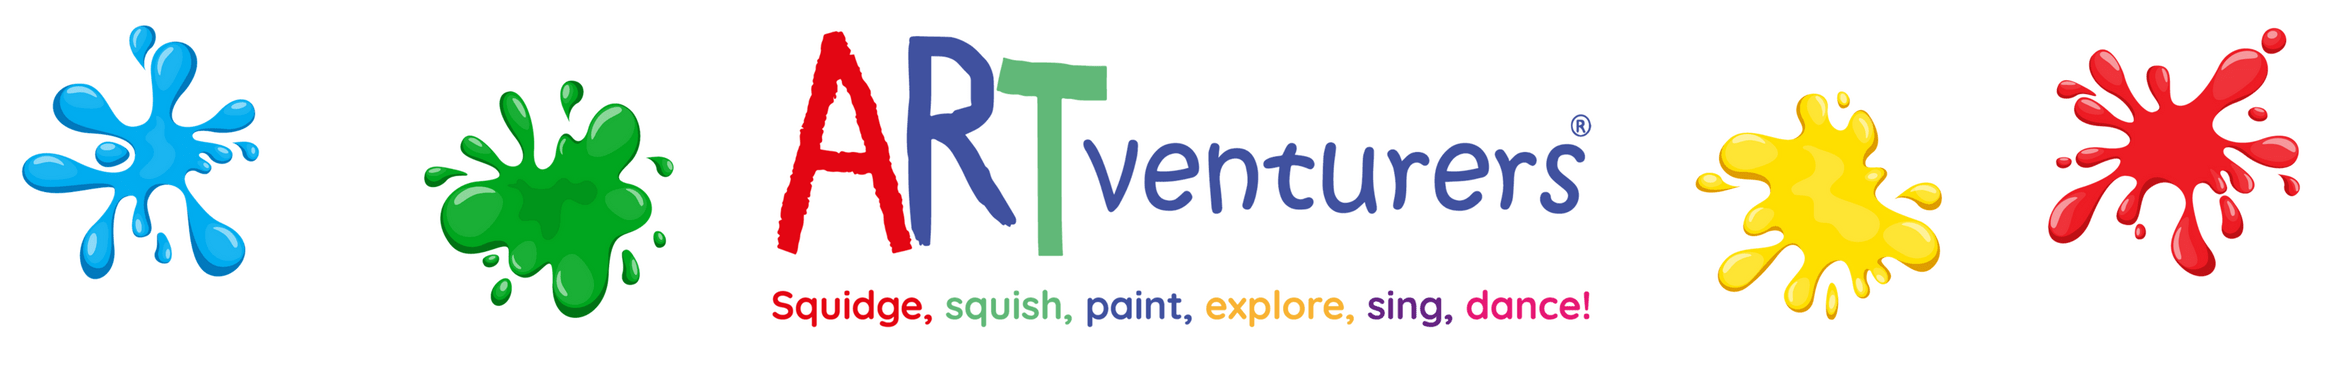 Artventurers Thurrock, Basildon and Billericay